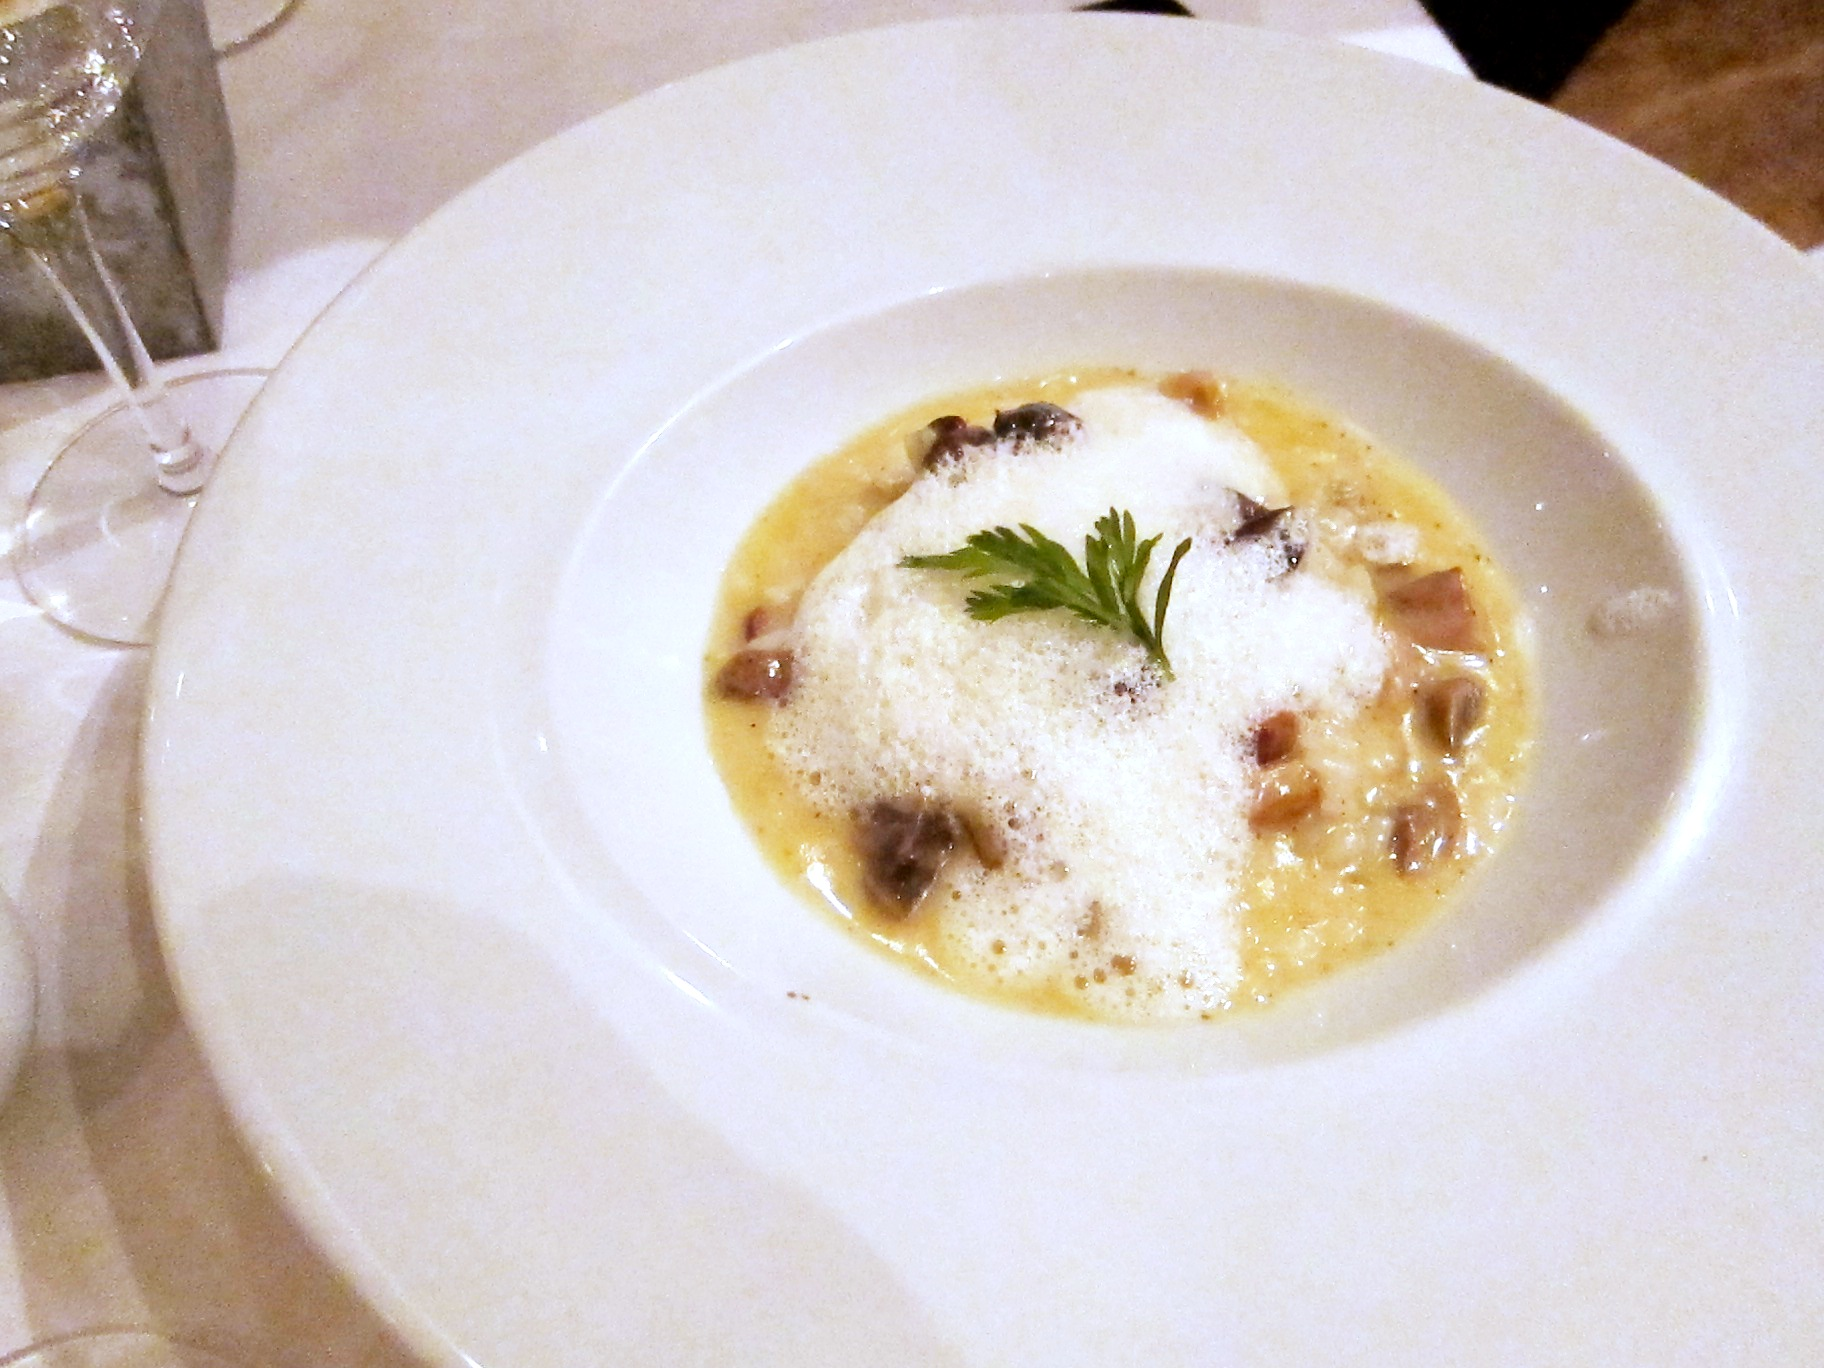 Appetizer: Wild Mushroom Risotto, Confit Snails with Truffle Froth